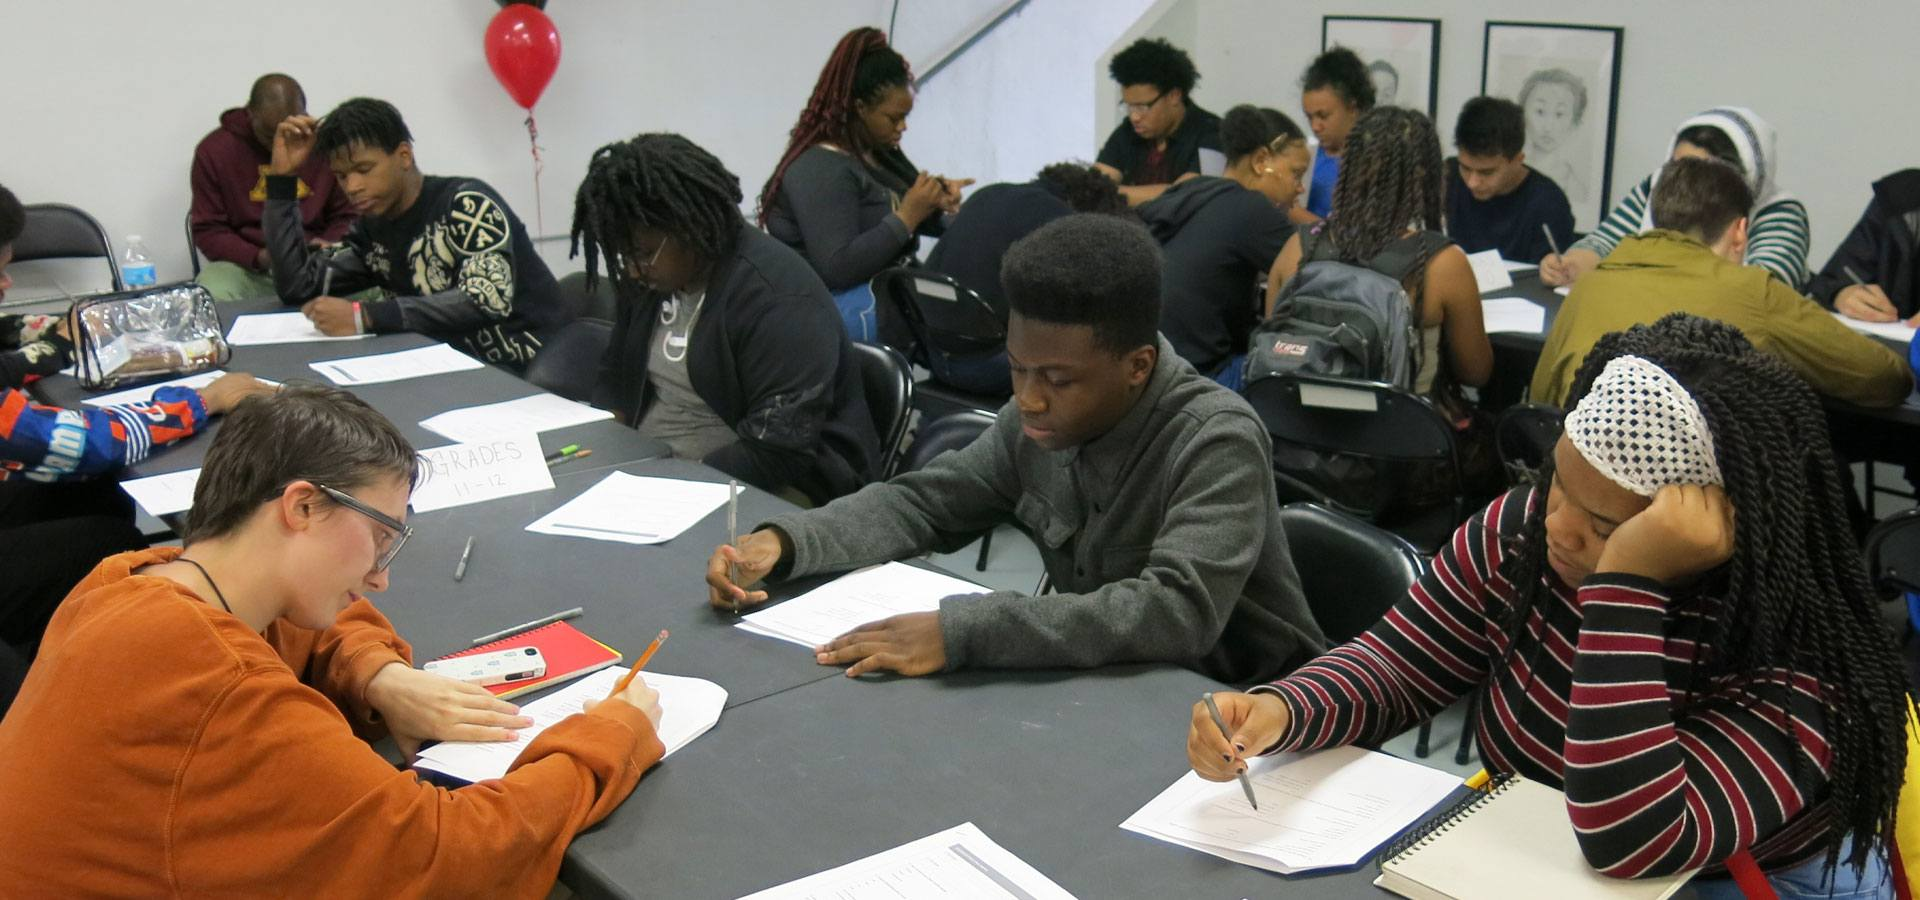 Several young people working on reflection writings